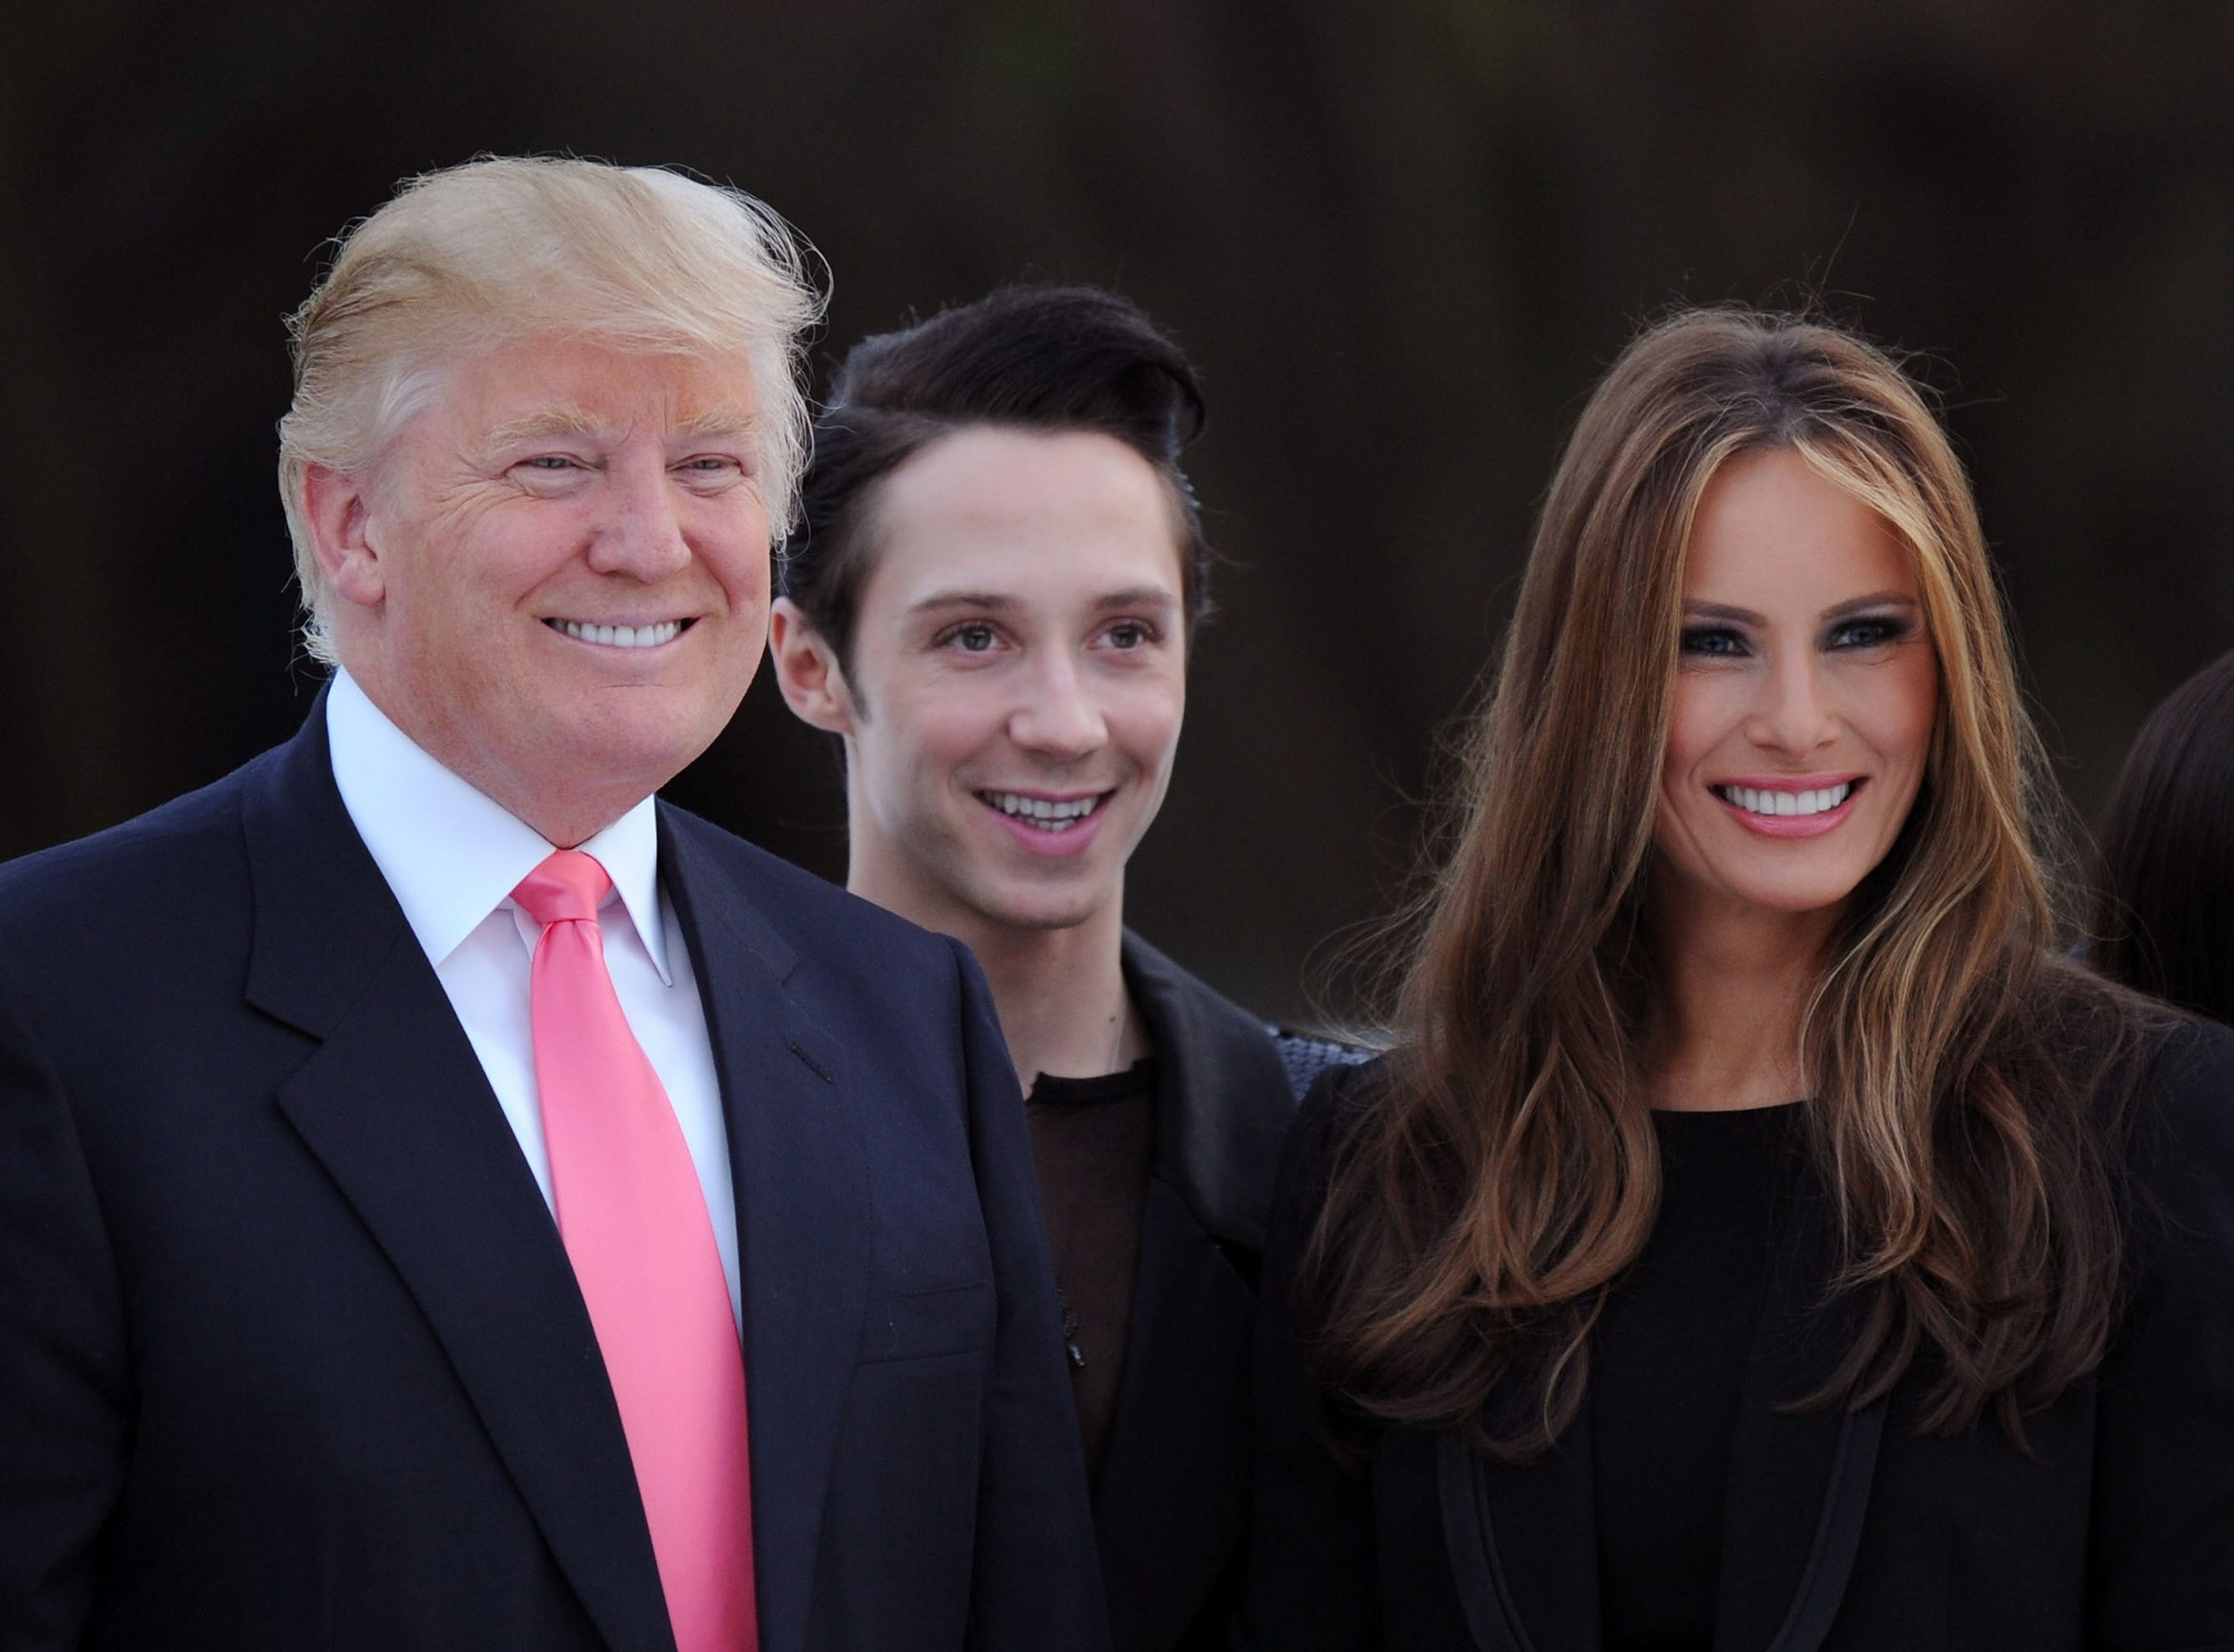 Donald Trump, figure skater Johnny Weir and Melania Trump attend the Figure Skating in Harlem's 2010 Skating with the Stars benefit gala in Central Park on April 5, 2010 in New York City.